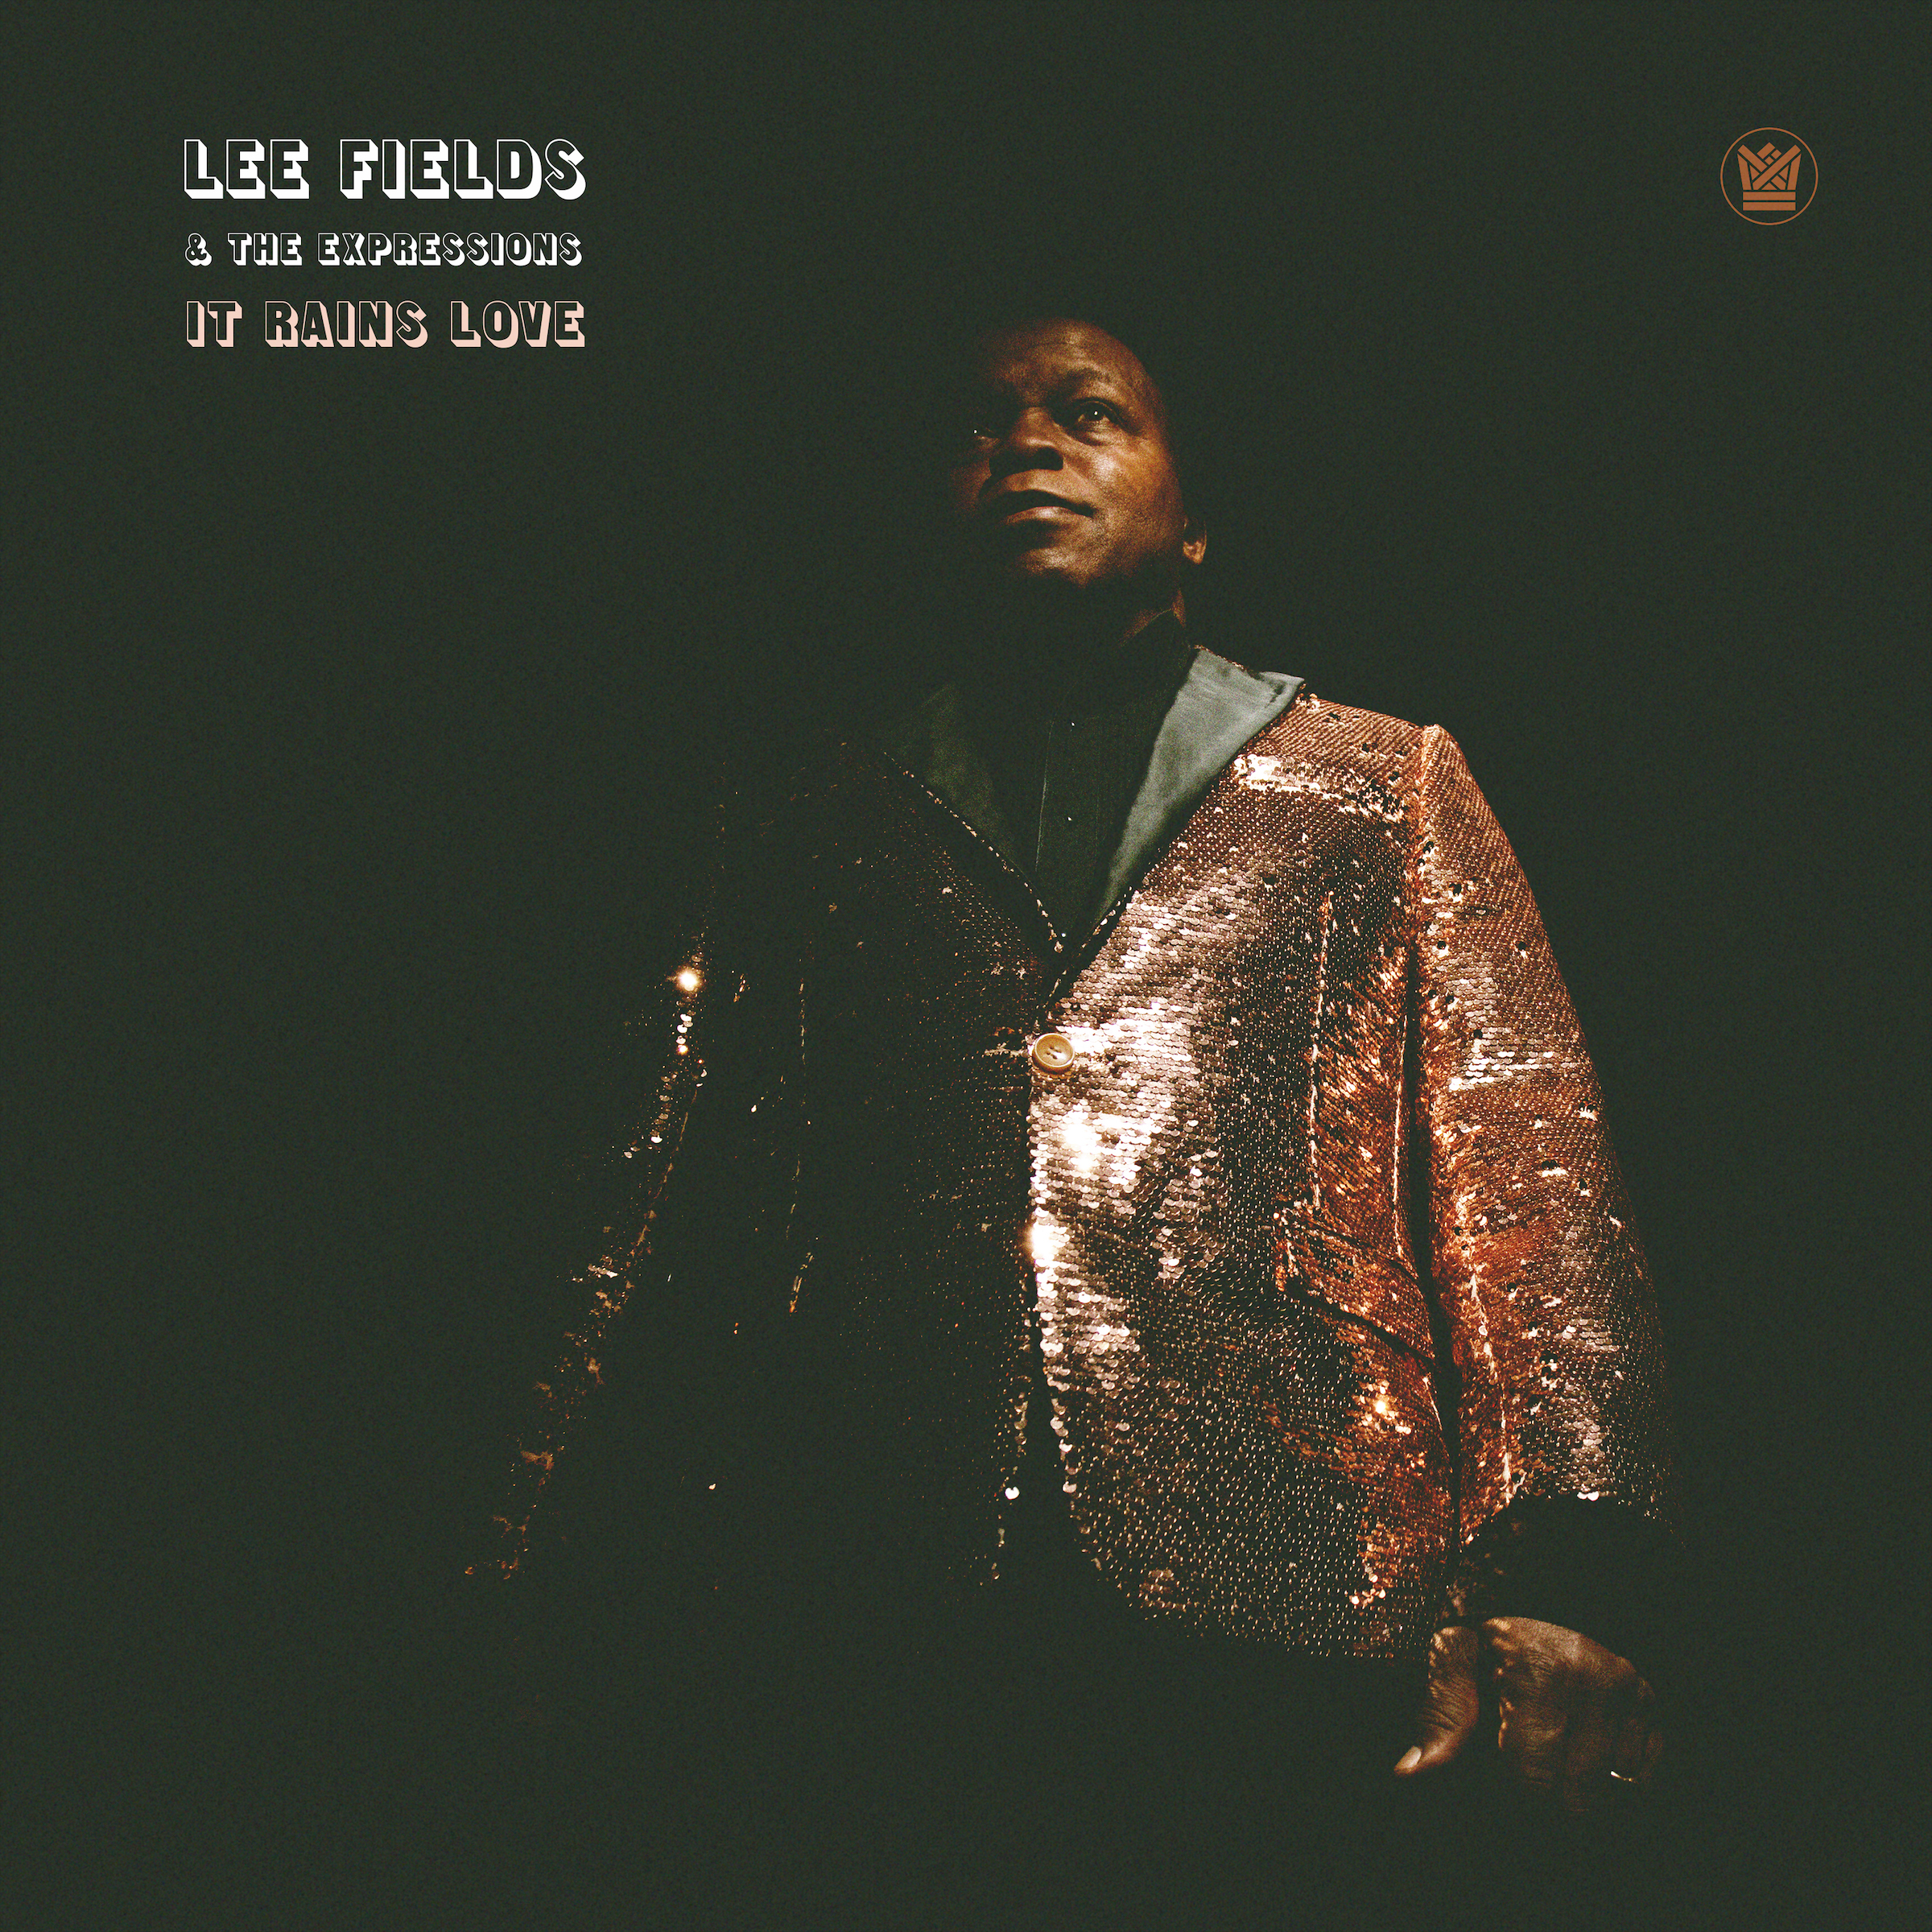 Lee Fields - It Rains Love artwork.jpg